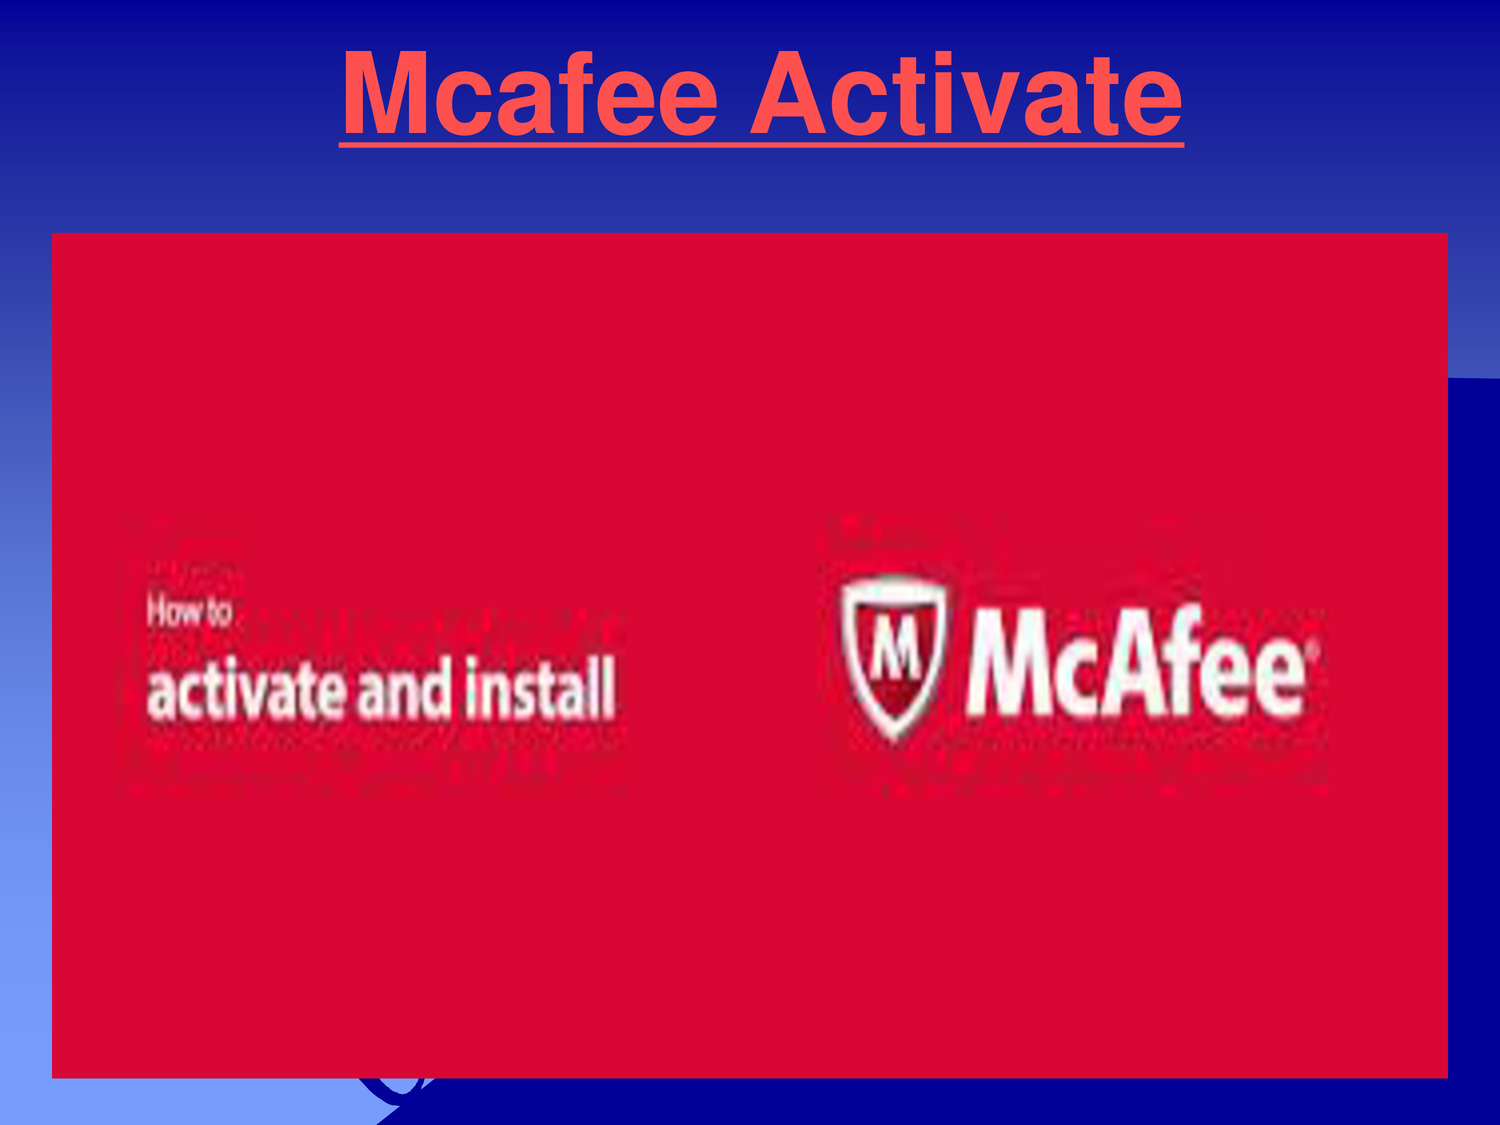 Mcafee activate & Mcafee Com Activate pdf | DocDroid